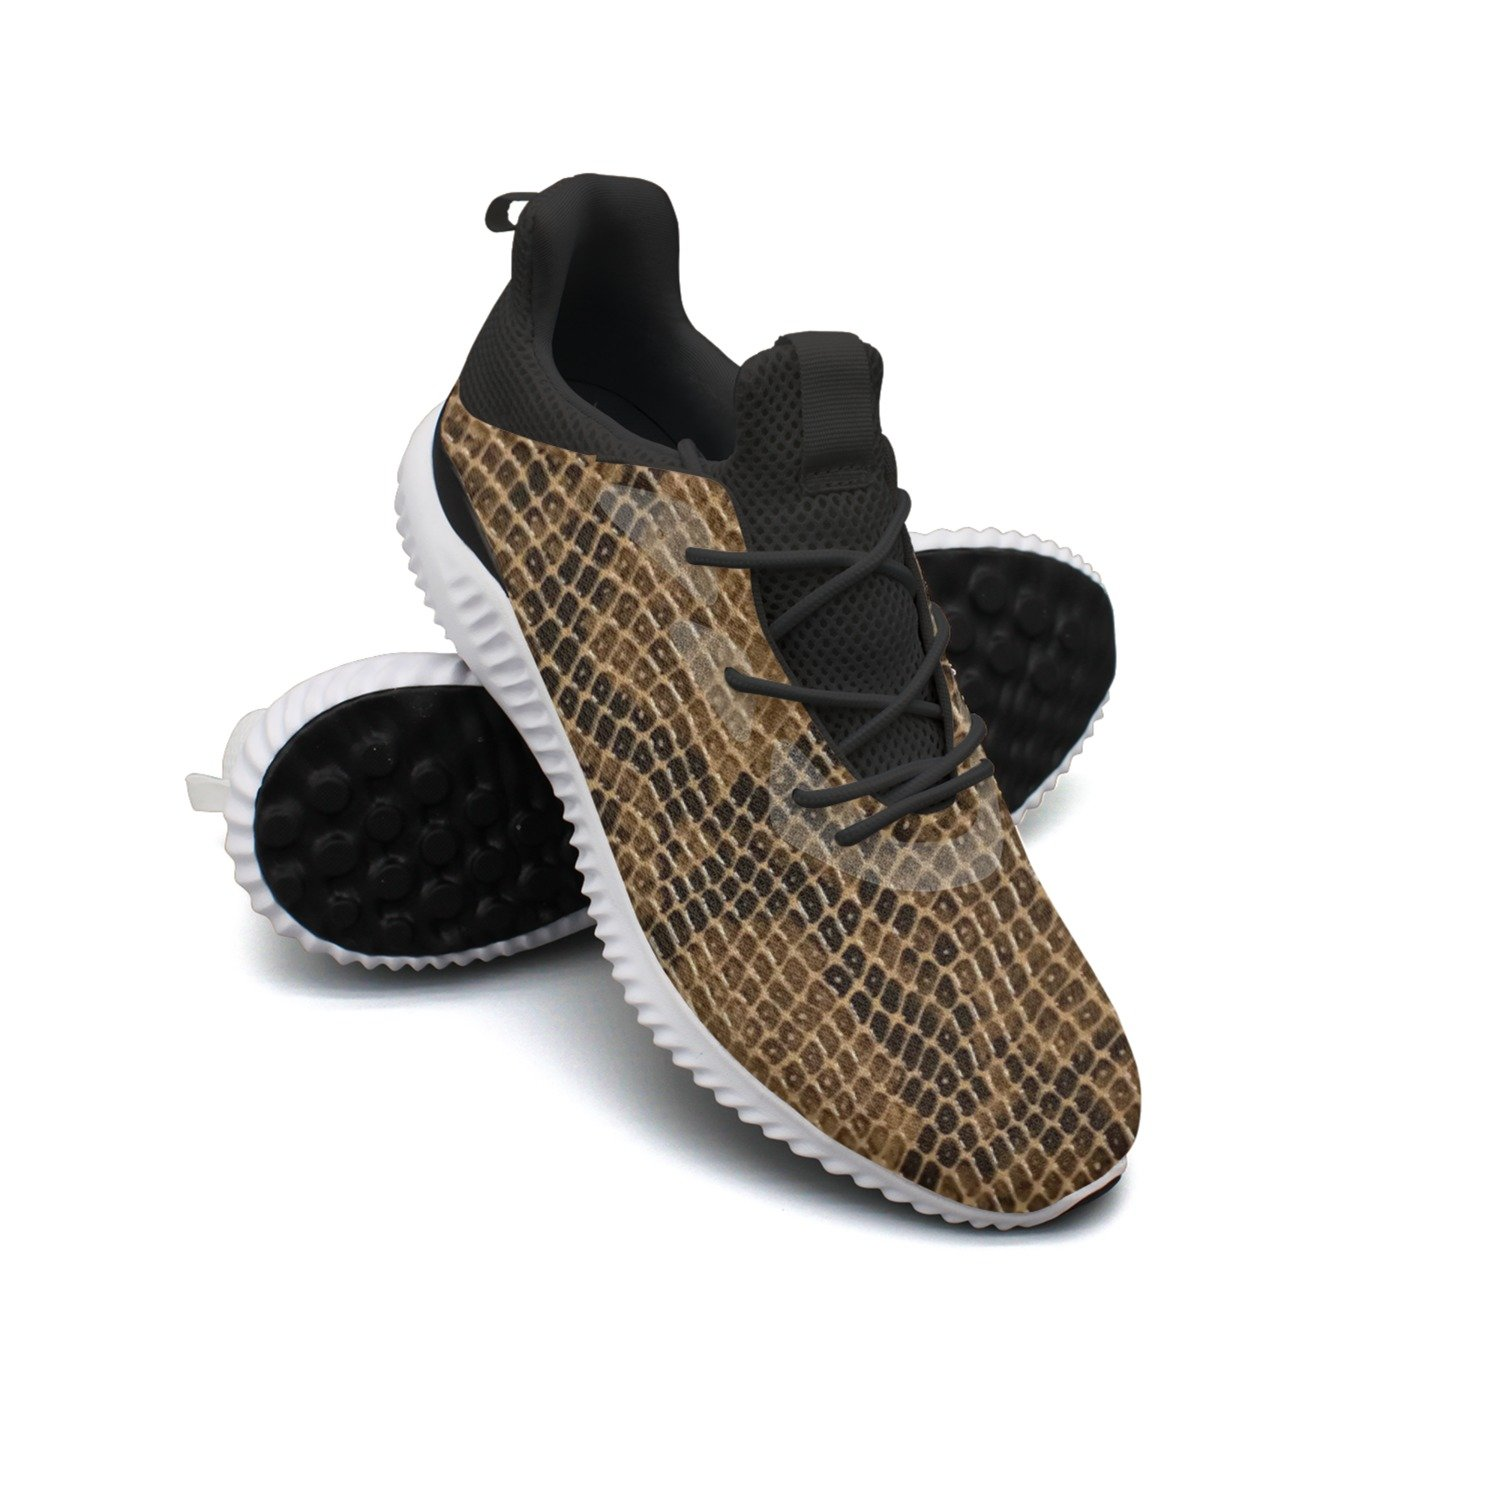 Cobra Snake Skin Leisure Sports Running Shoes Women Cool Cool Colorful